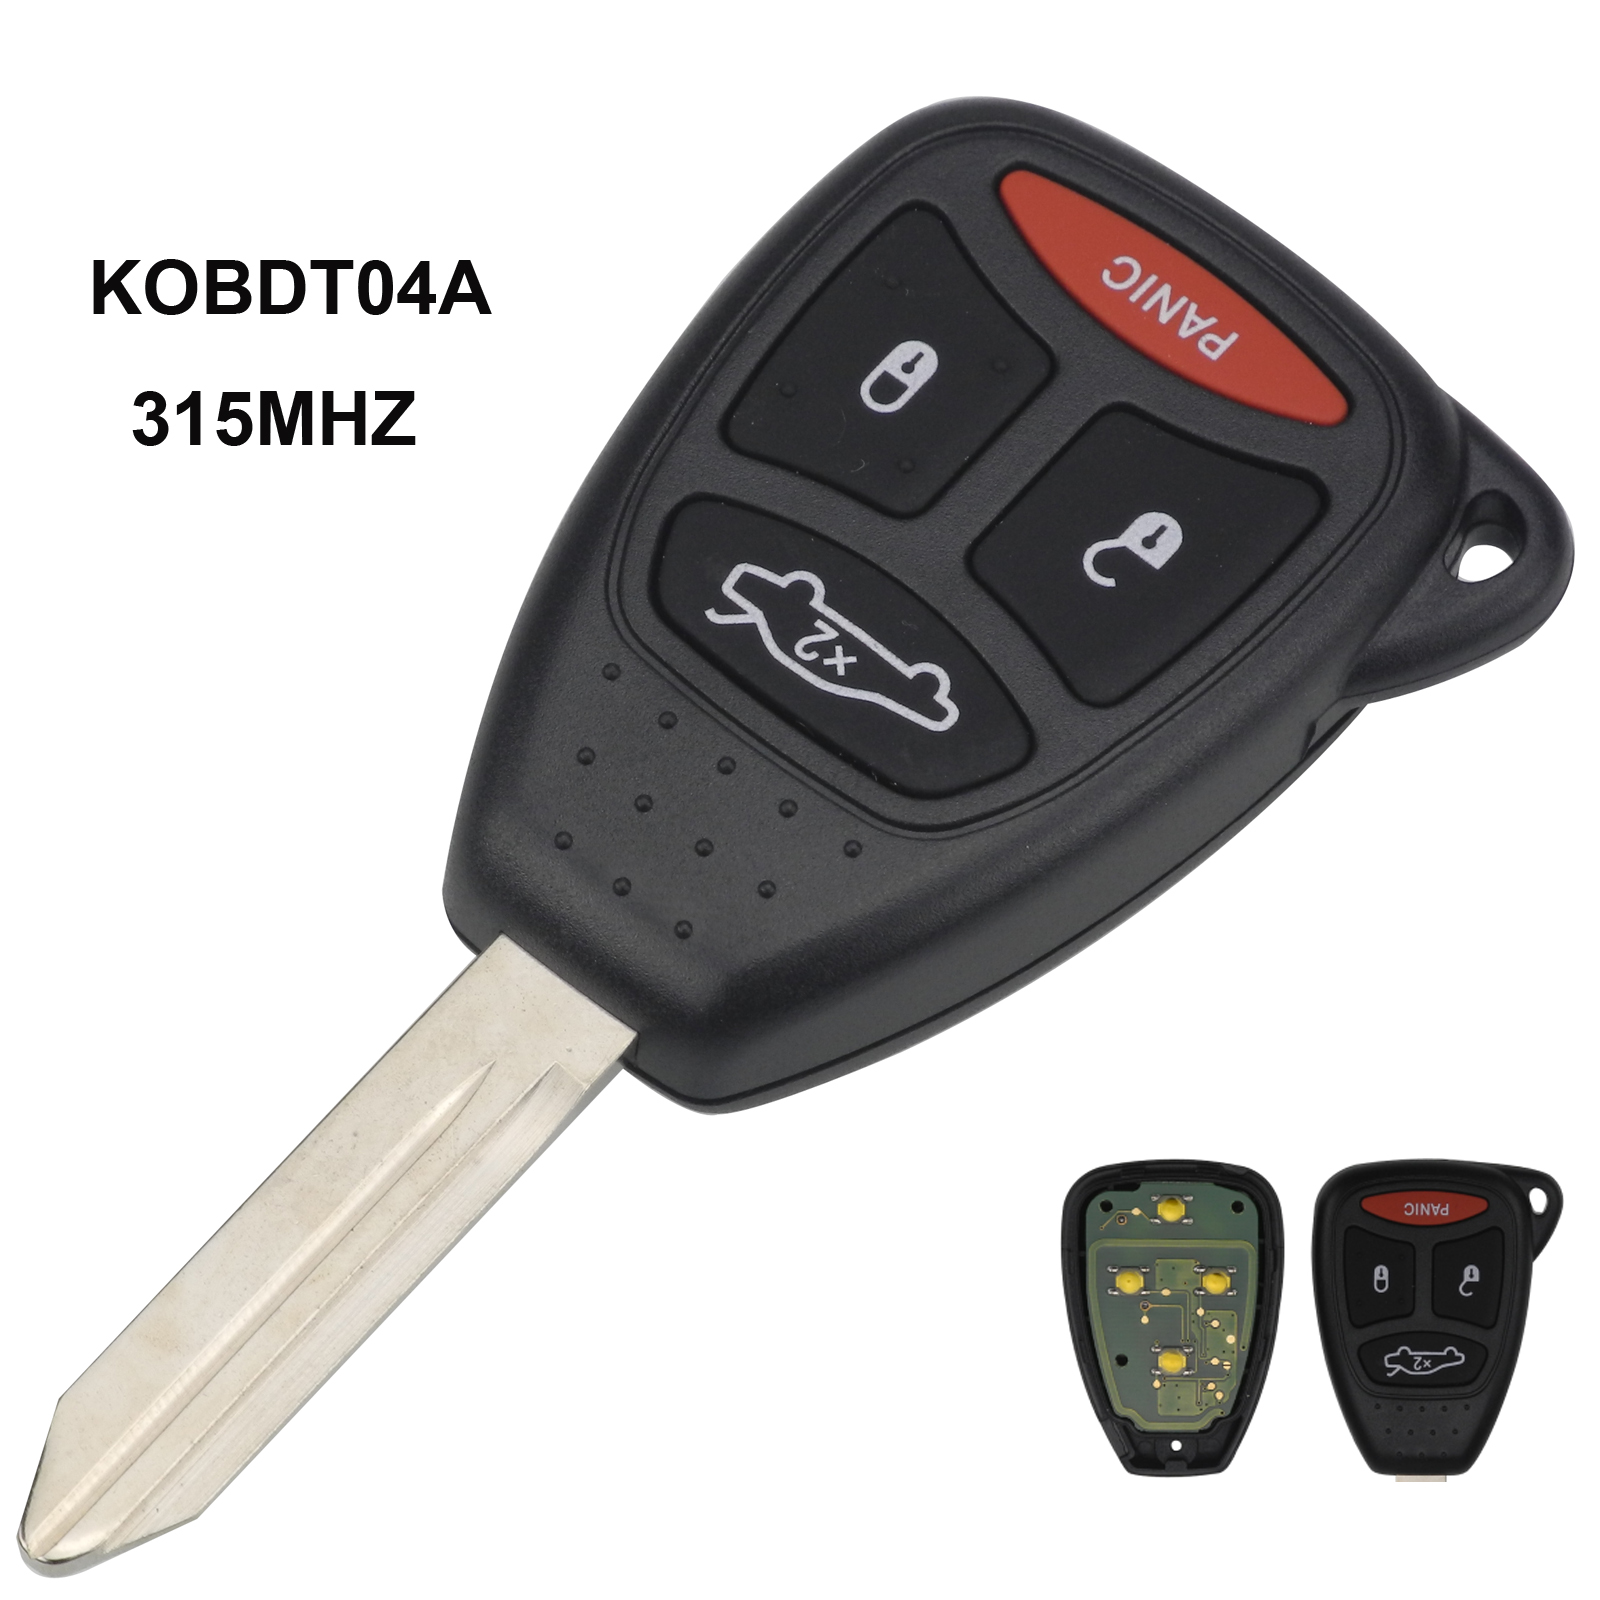 maizhi KOBDT04A 315mhz 4 BTNS Remote Head Car Key for dodge chrysler jeep Dakota Durango Charger 300 Aspen Grand CStyling